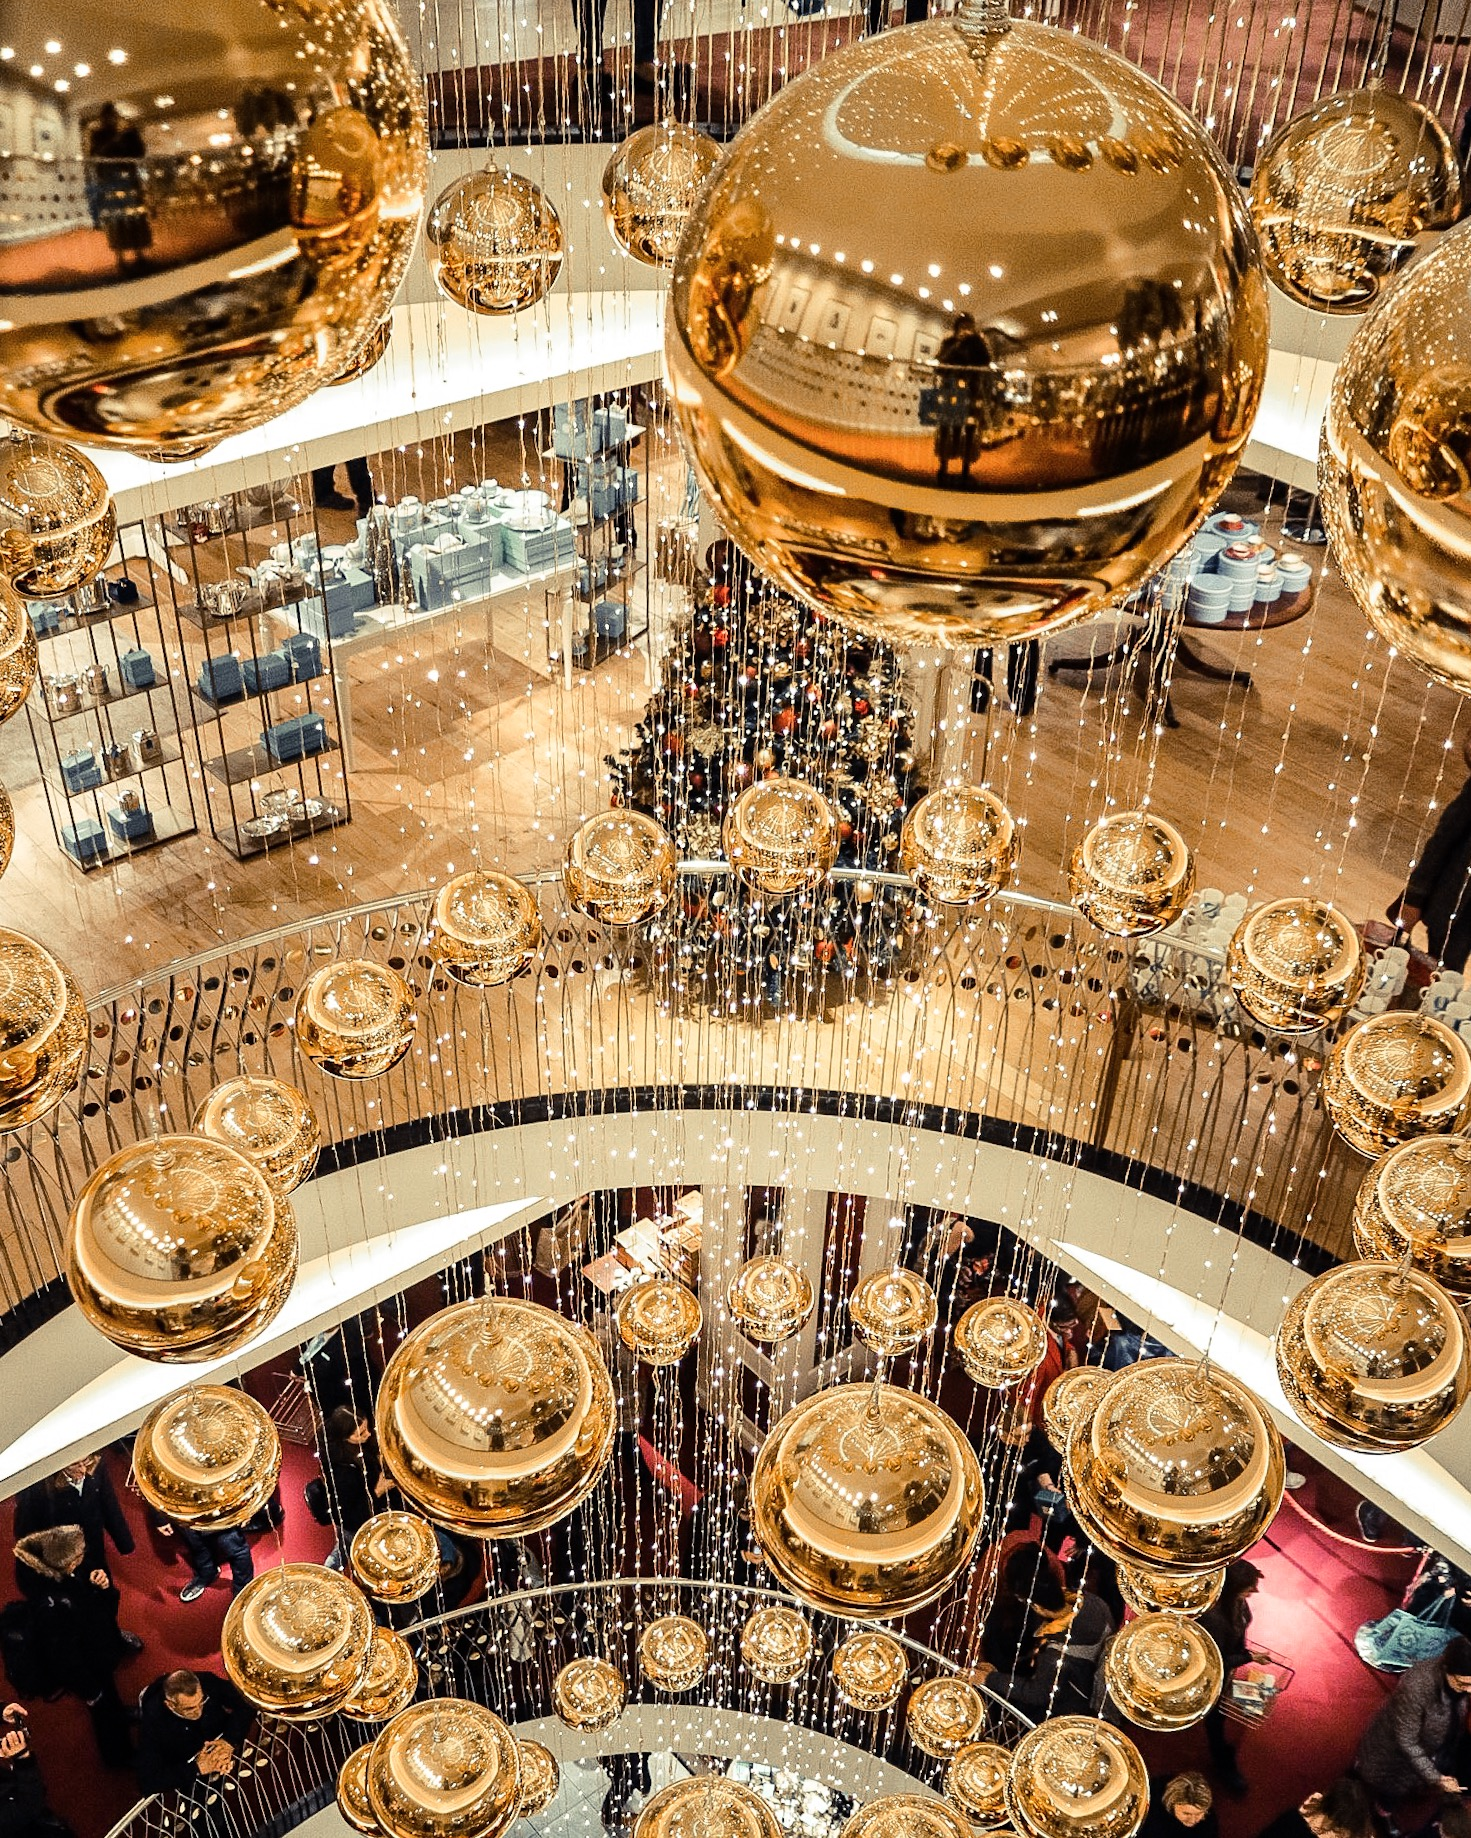 Christmas decorations at Fortnum and Mason.